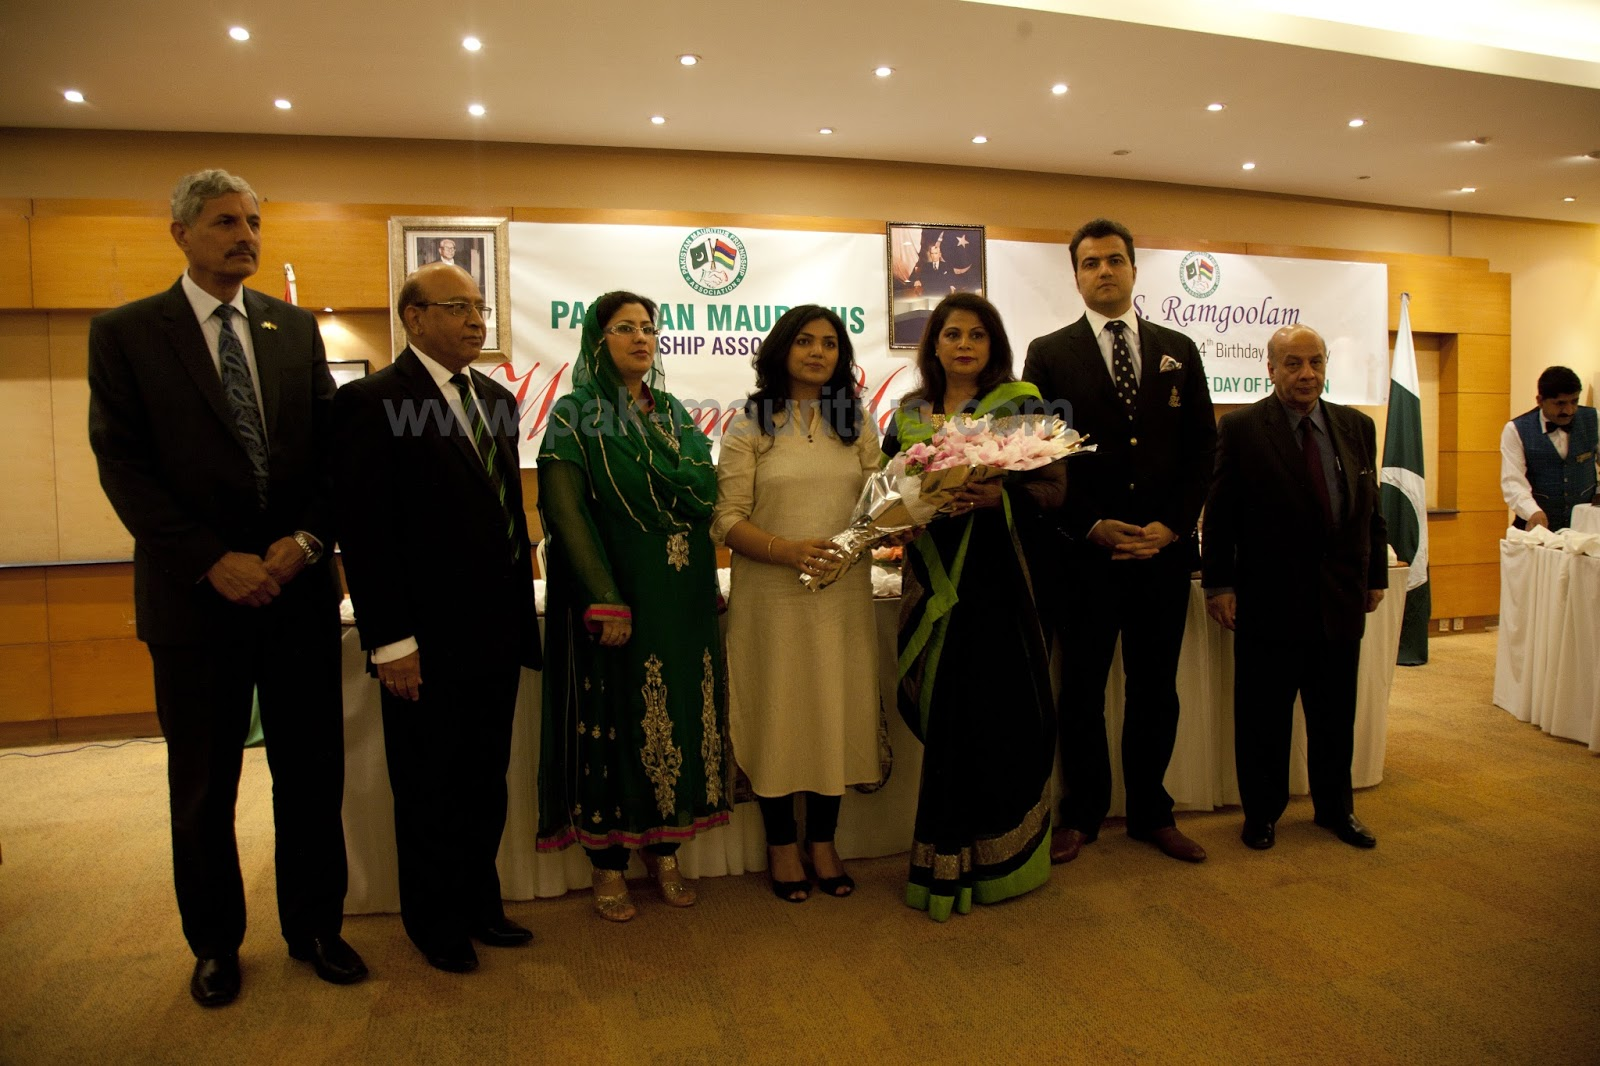 pakistan-mauritius-friendship-association-panel-standing-ambassador